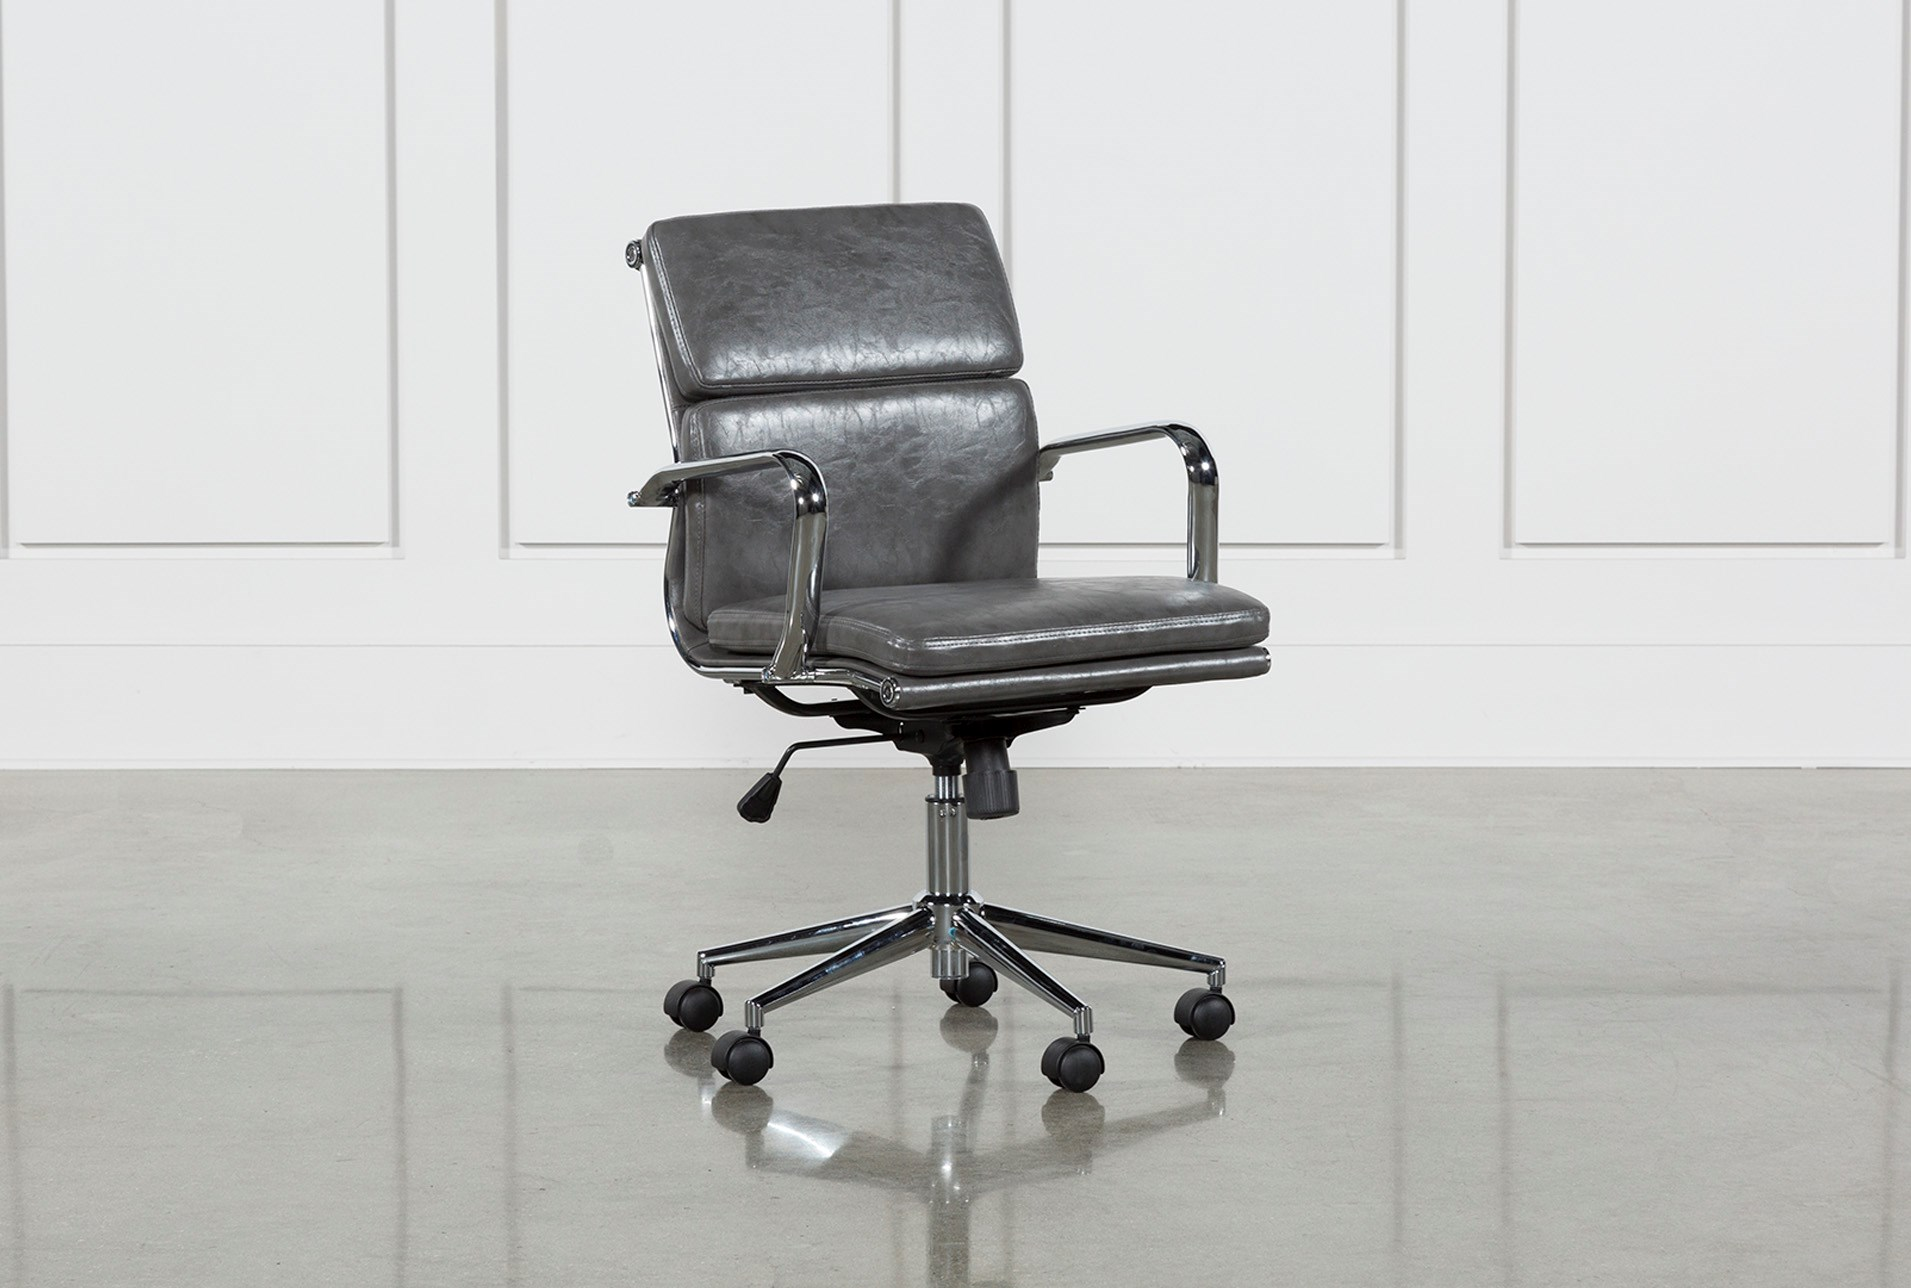 Moby Grey Low Back Office Chair Qty 1 Has Been Successfully Added To Your Cart